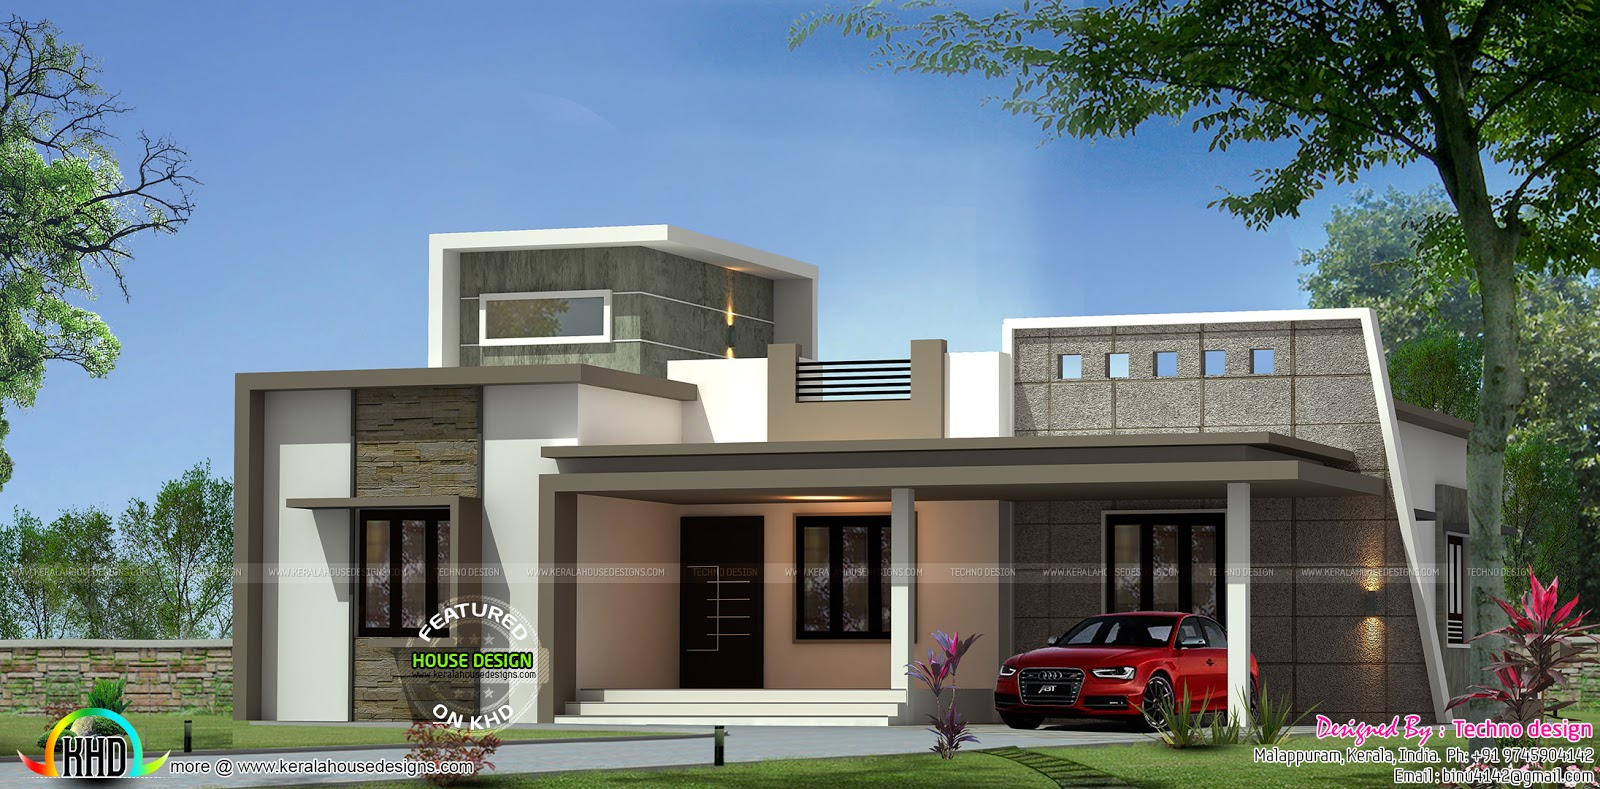 March 2017 kerala home design and floor plans New model contemporary house